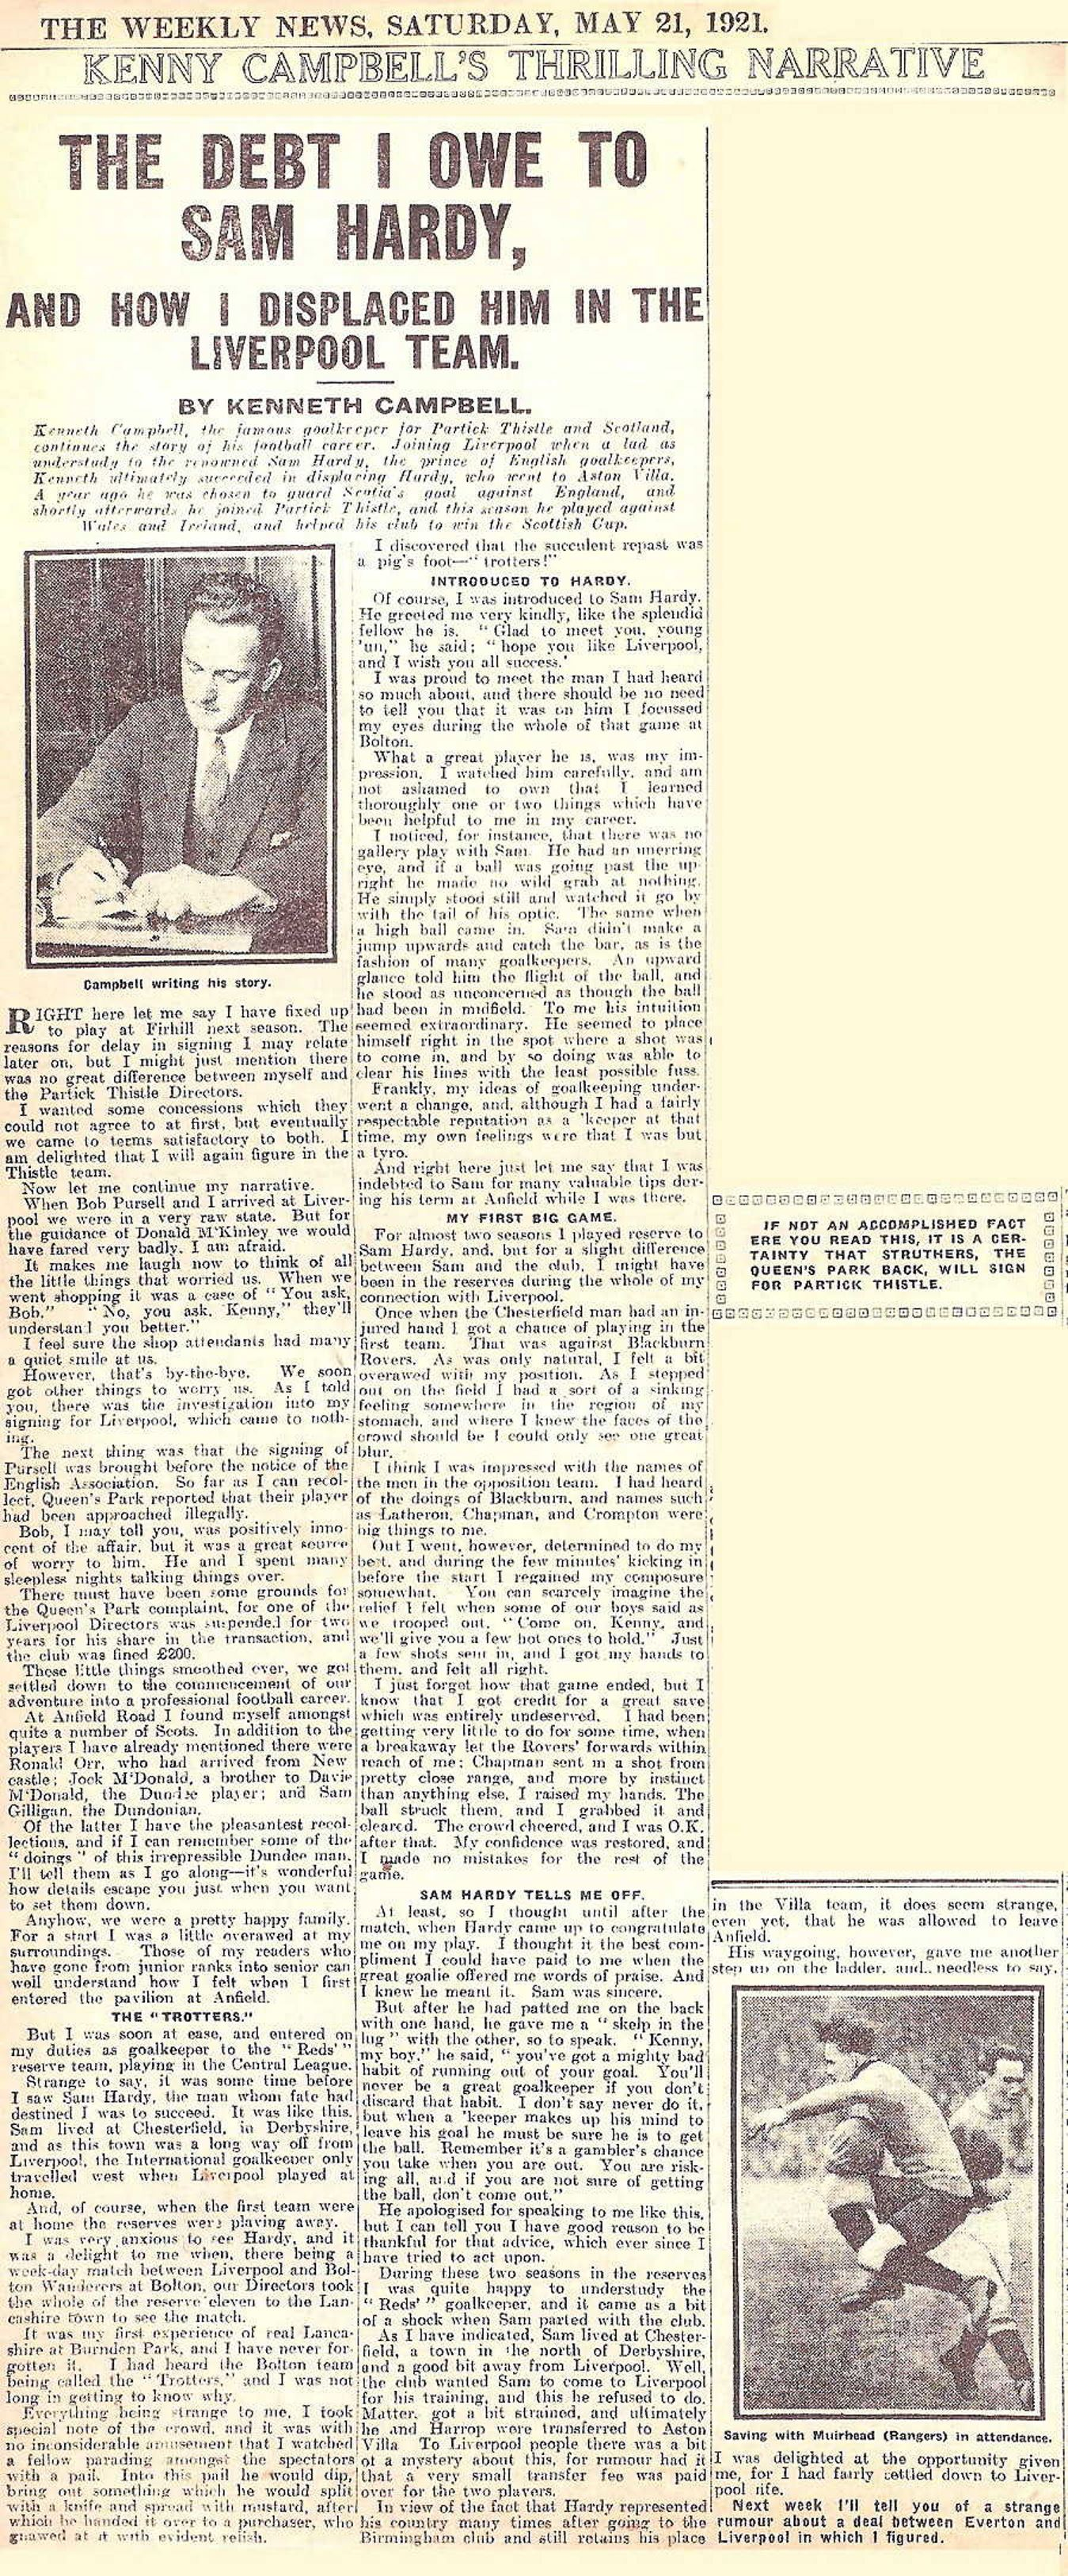 The debt I owe to Sam Hardy by Ken Campbell - The Weekly News 21 May 1921